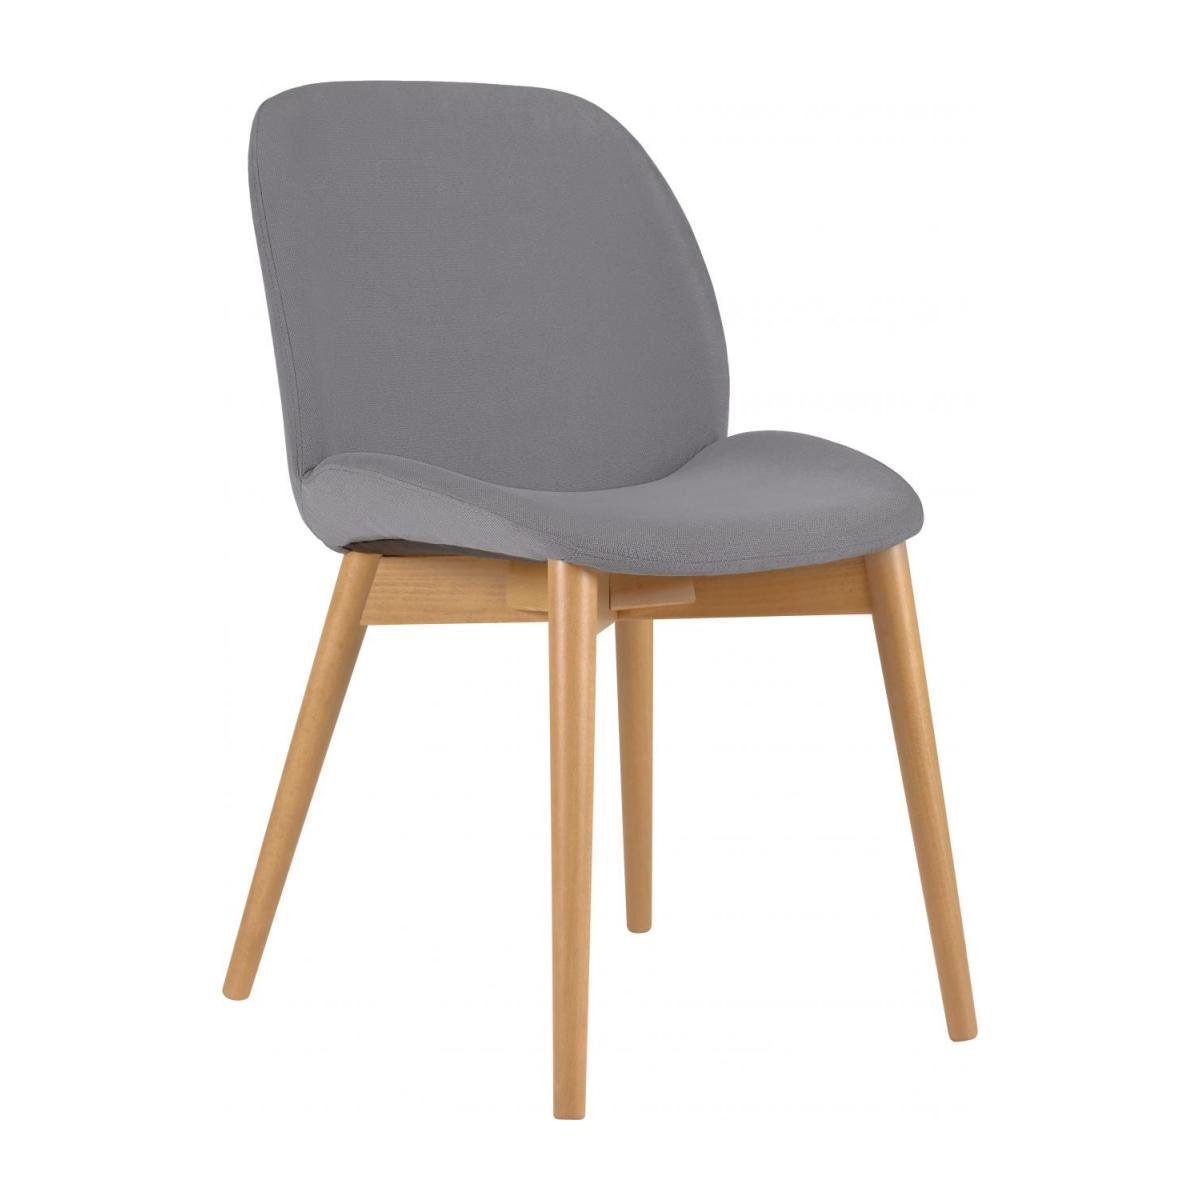 Chair with grey fabric cover and beech wood legs n°1